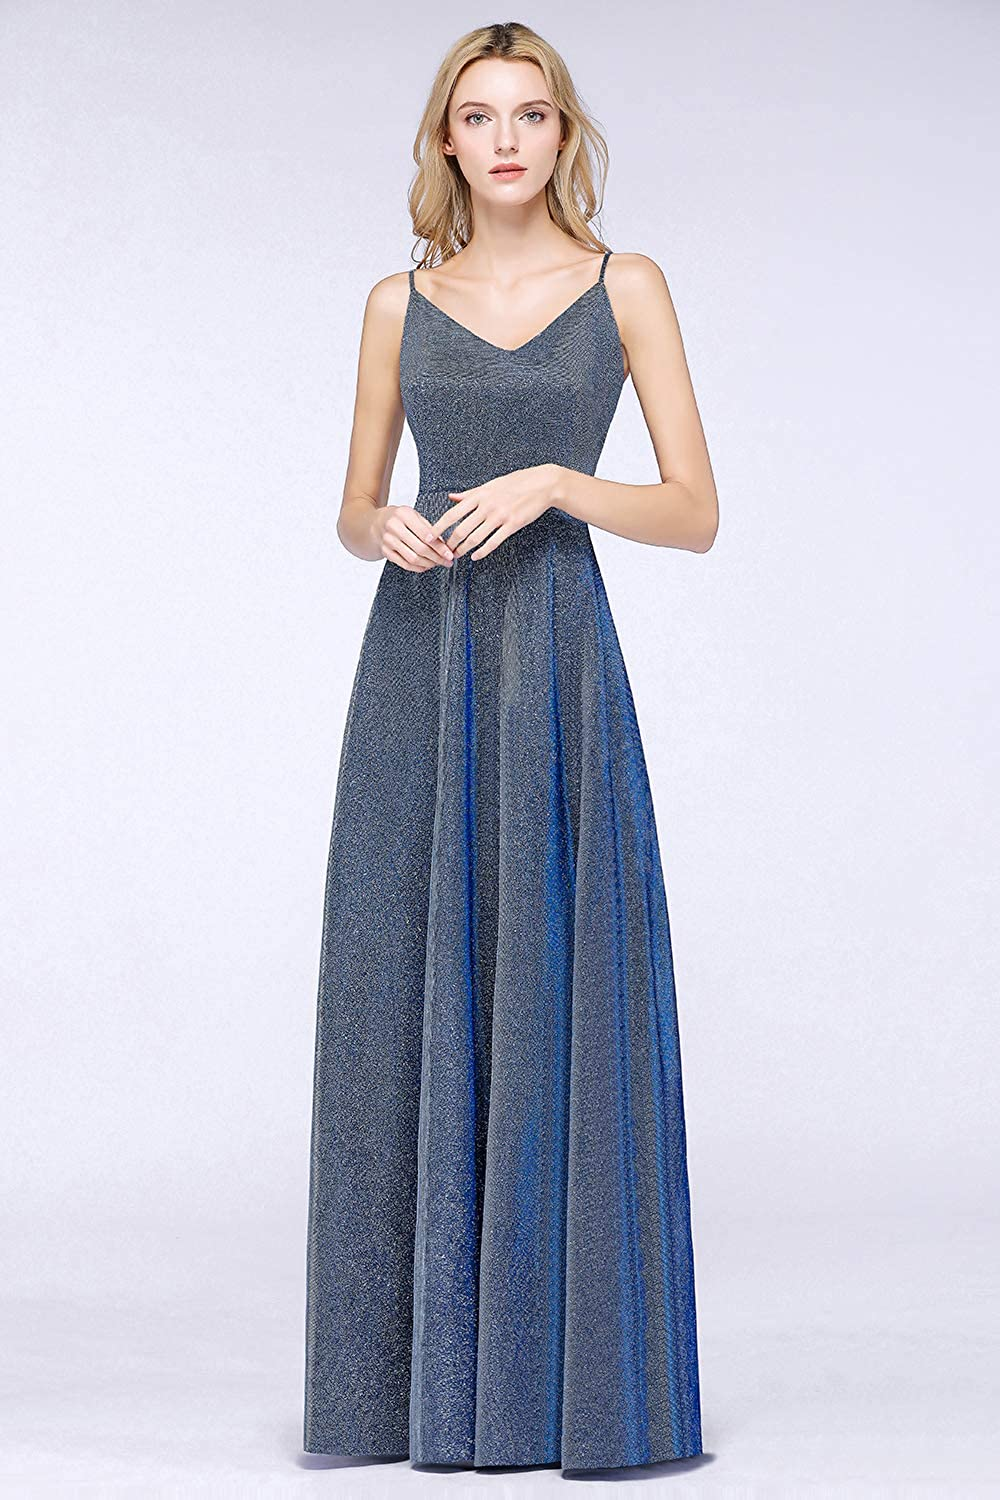 Fatapaese Womens Long Spaghetti Straps Evening Dress 2019 Prom Gown with Bright Silk